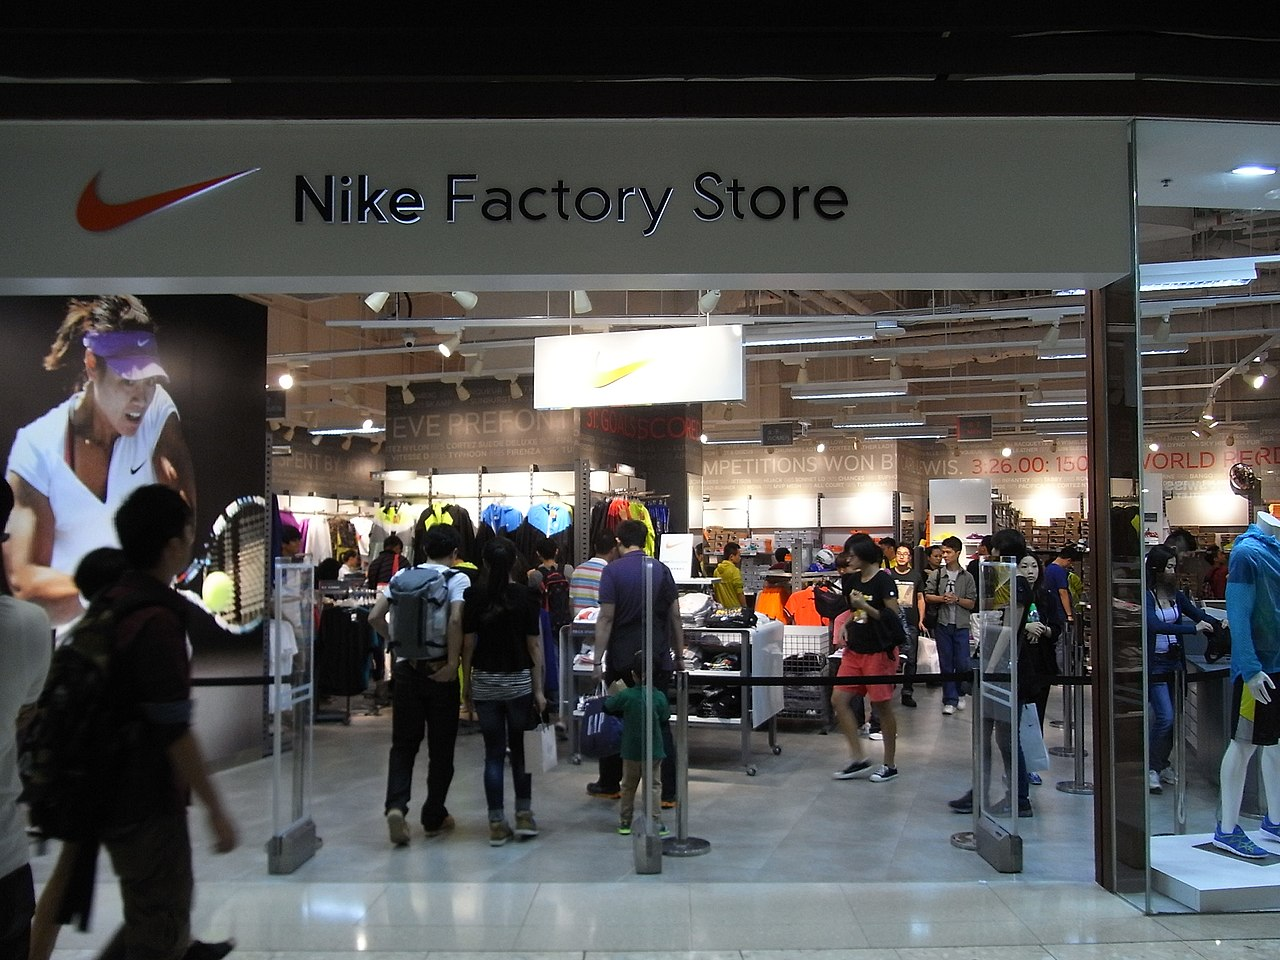 File:HK Tung Chung One CityGate shop Nike Factory Store ...